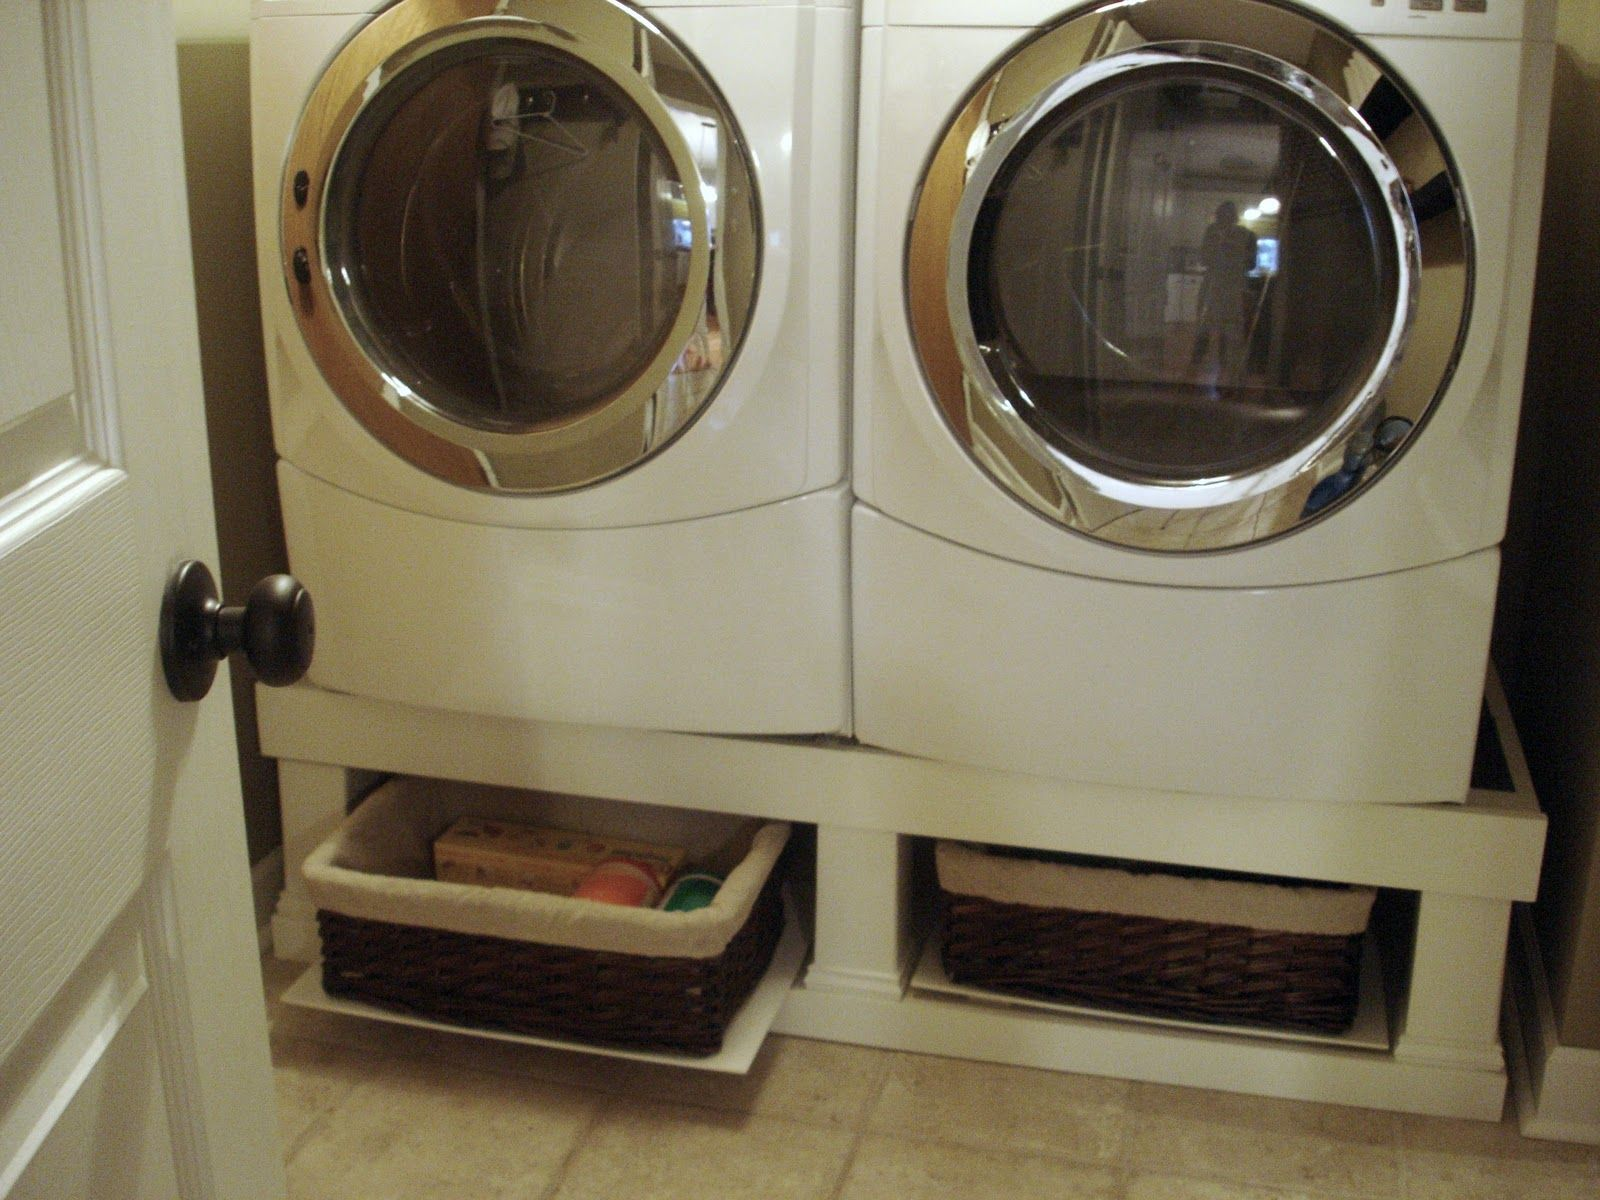 and dryer storage front reg load laundry pedestal accessories washer pedestals with for whirlpool samsung